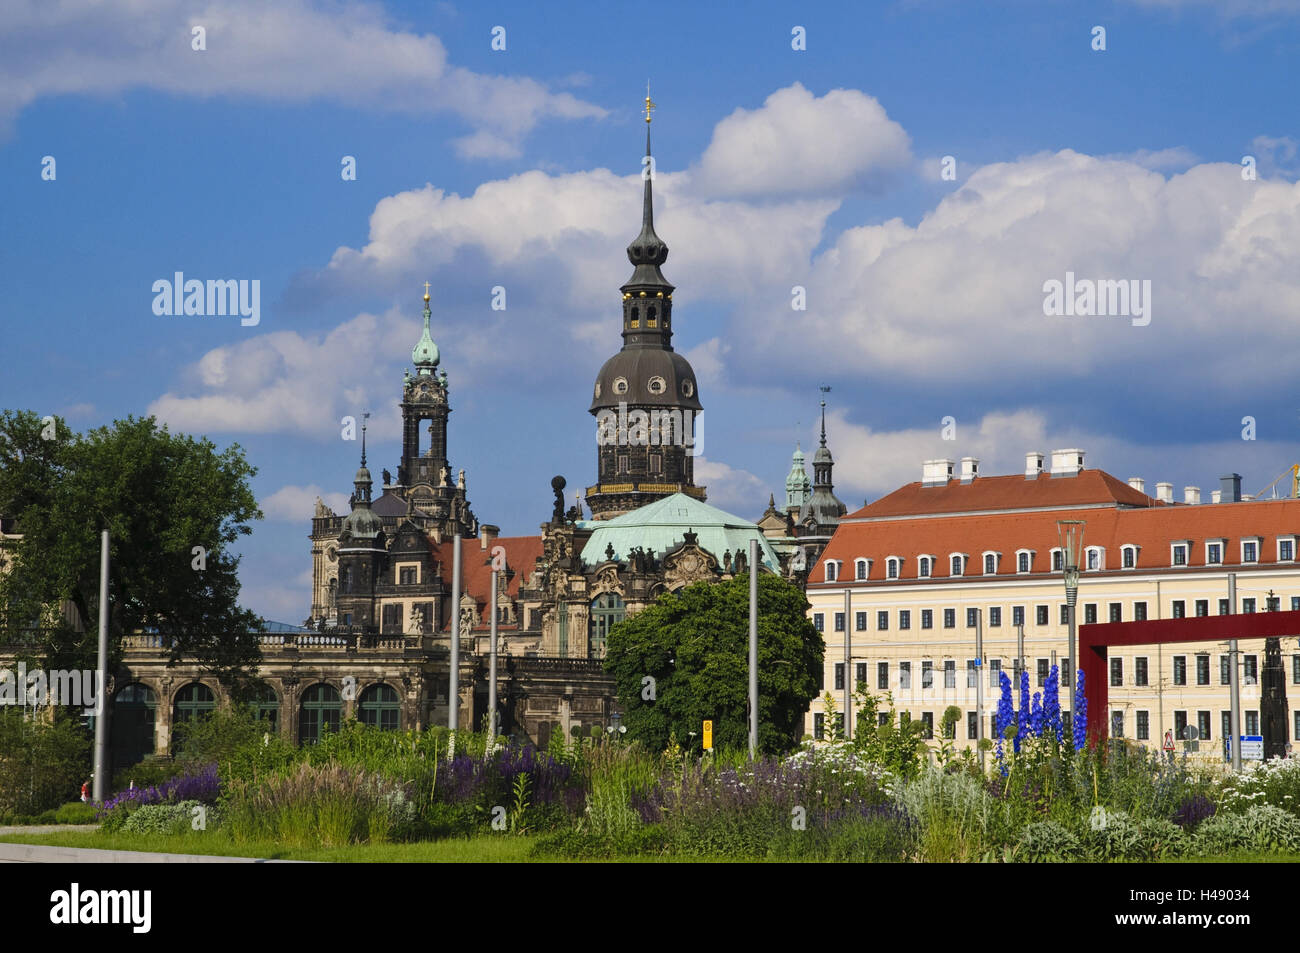 Postal space with kennel and pouch mountain palace, Dresden, Saxony, Germany, - Stock Image